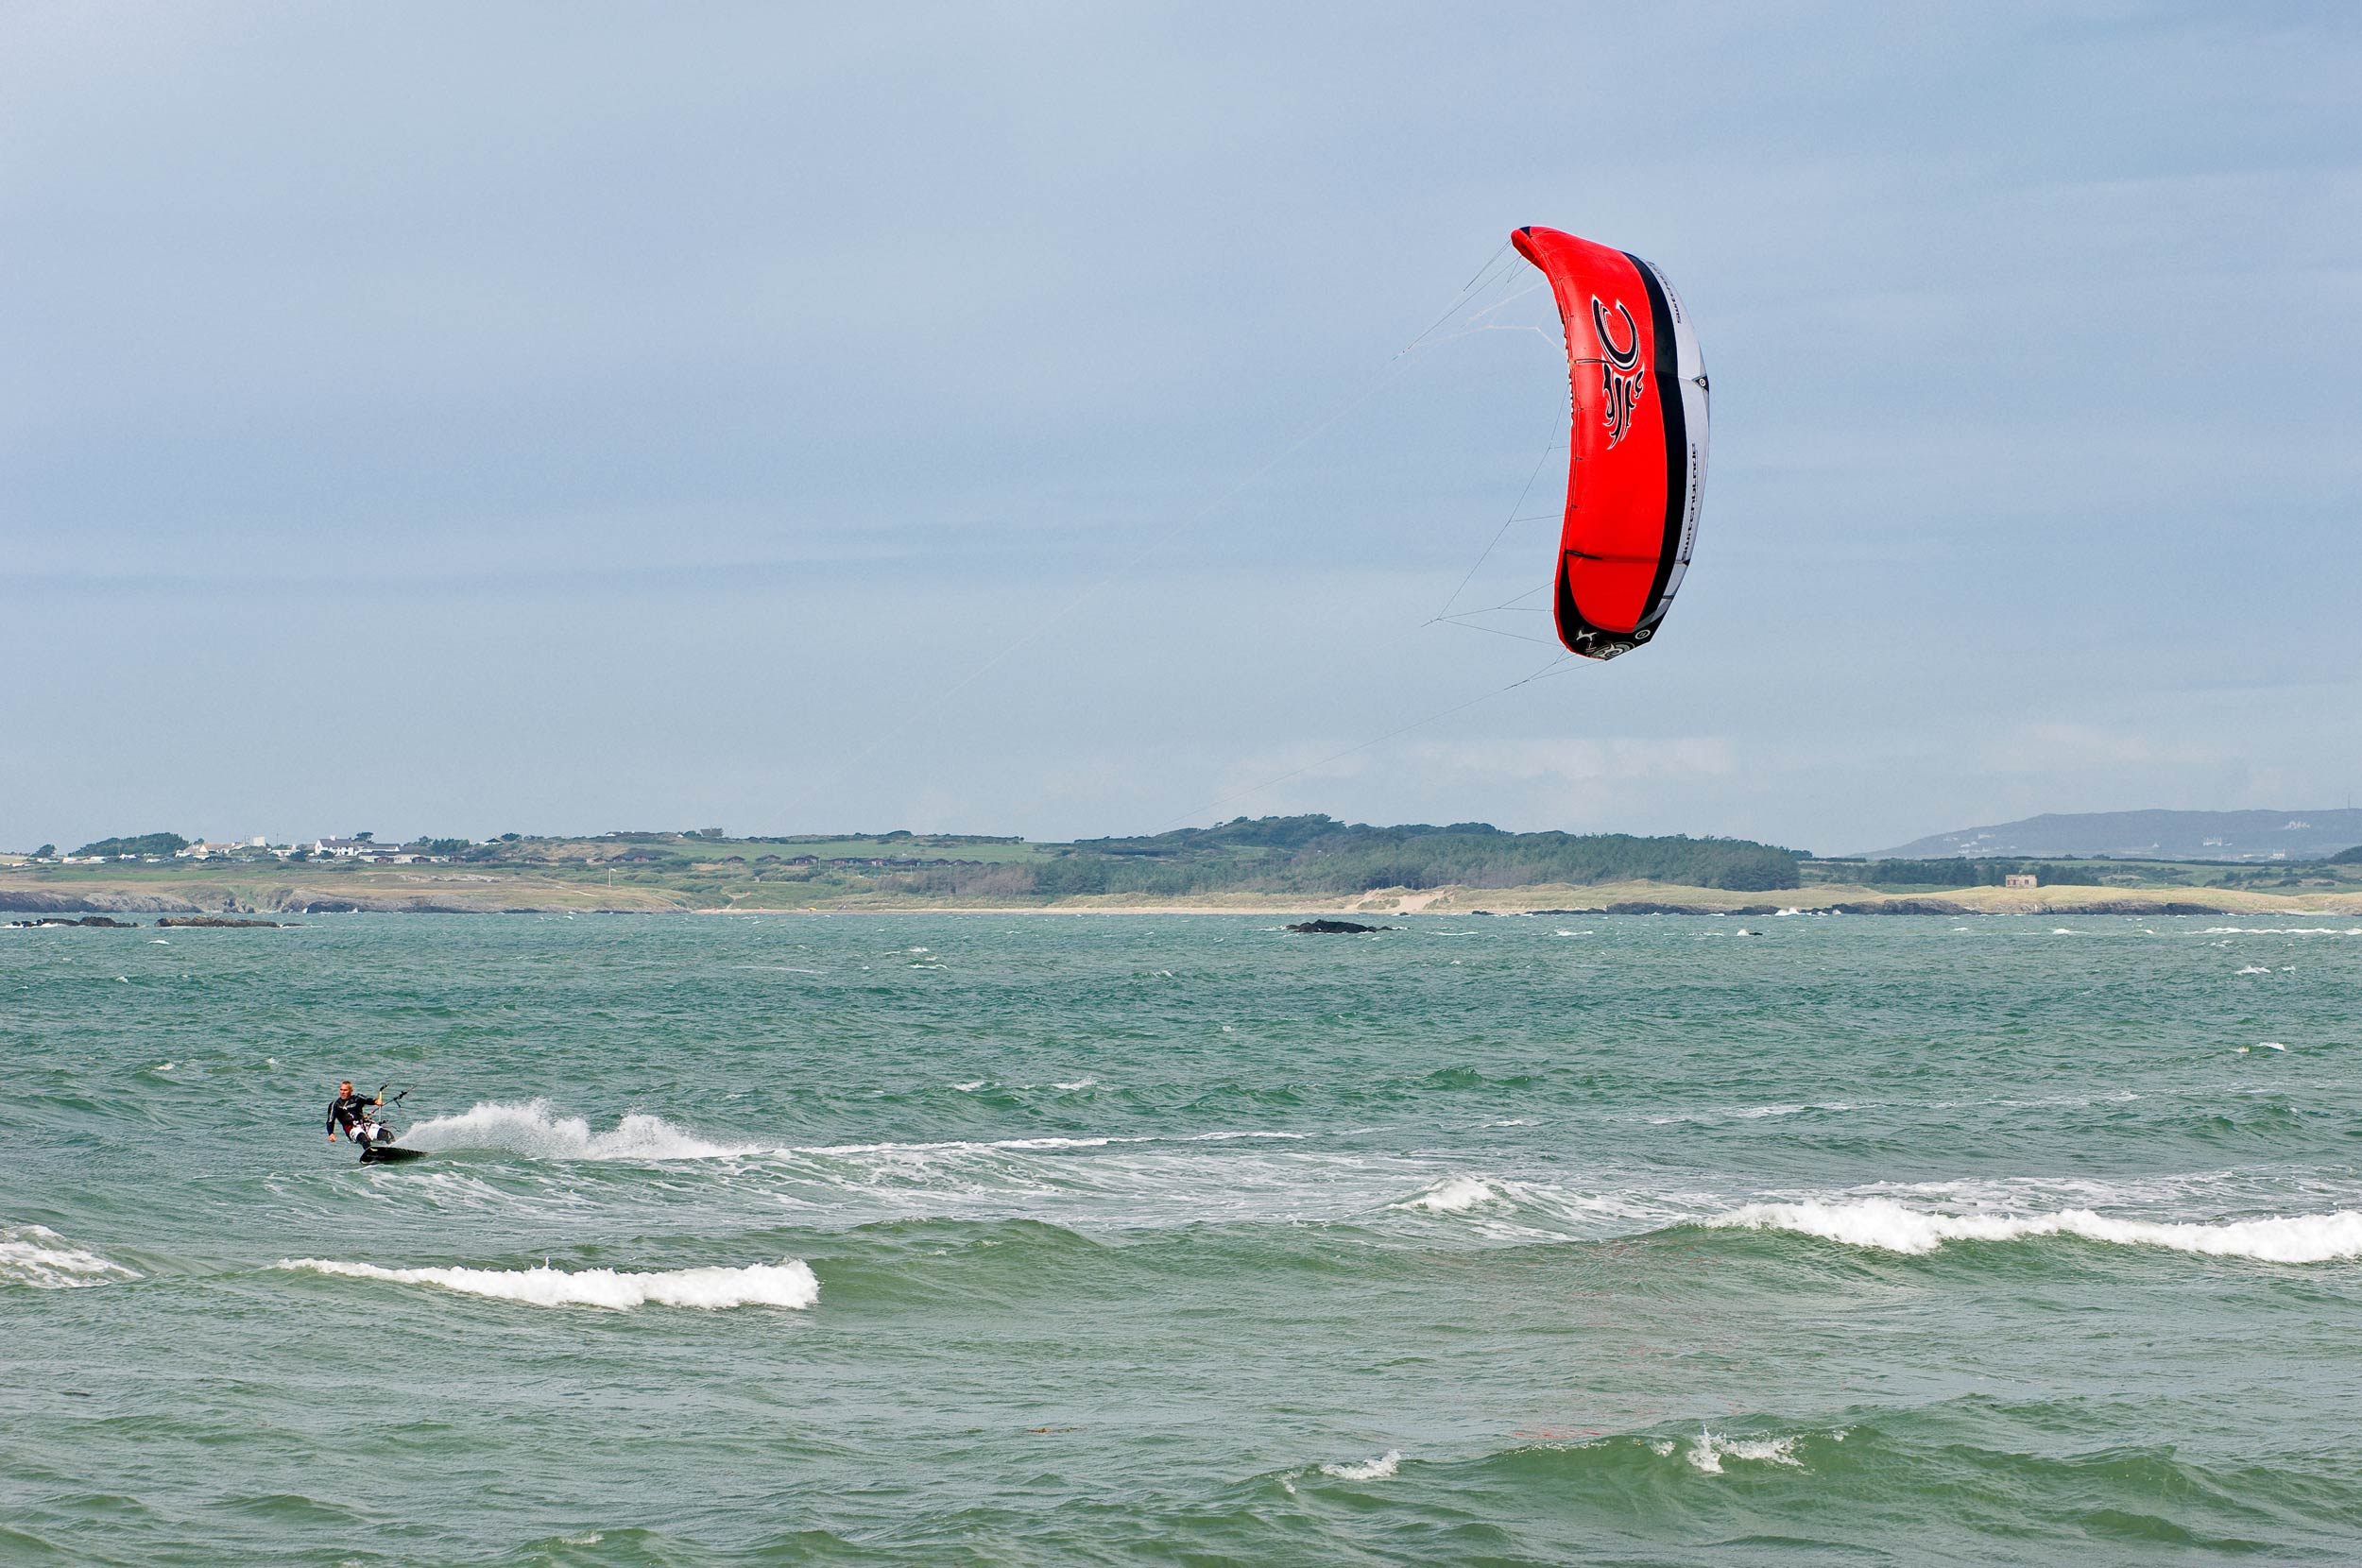 Kitesurfing at Rhosneigr, Anglesey  (Crown copyright 2018 / Visit Wales)